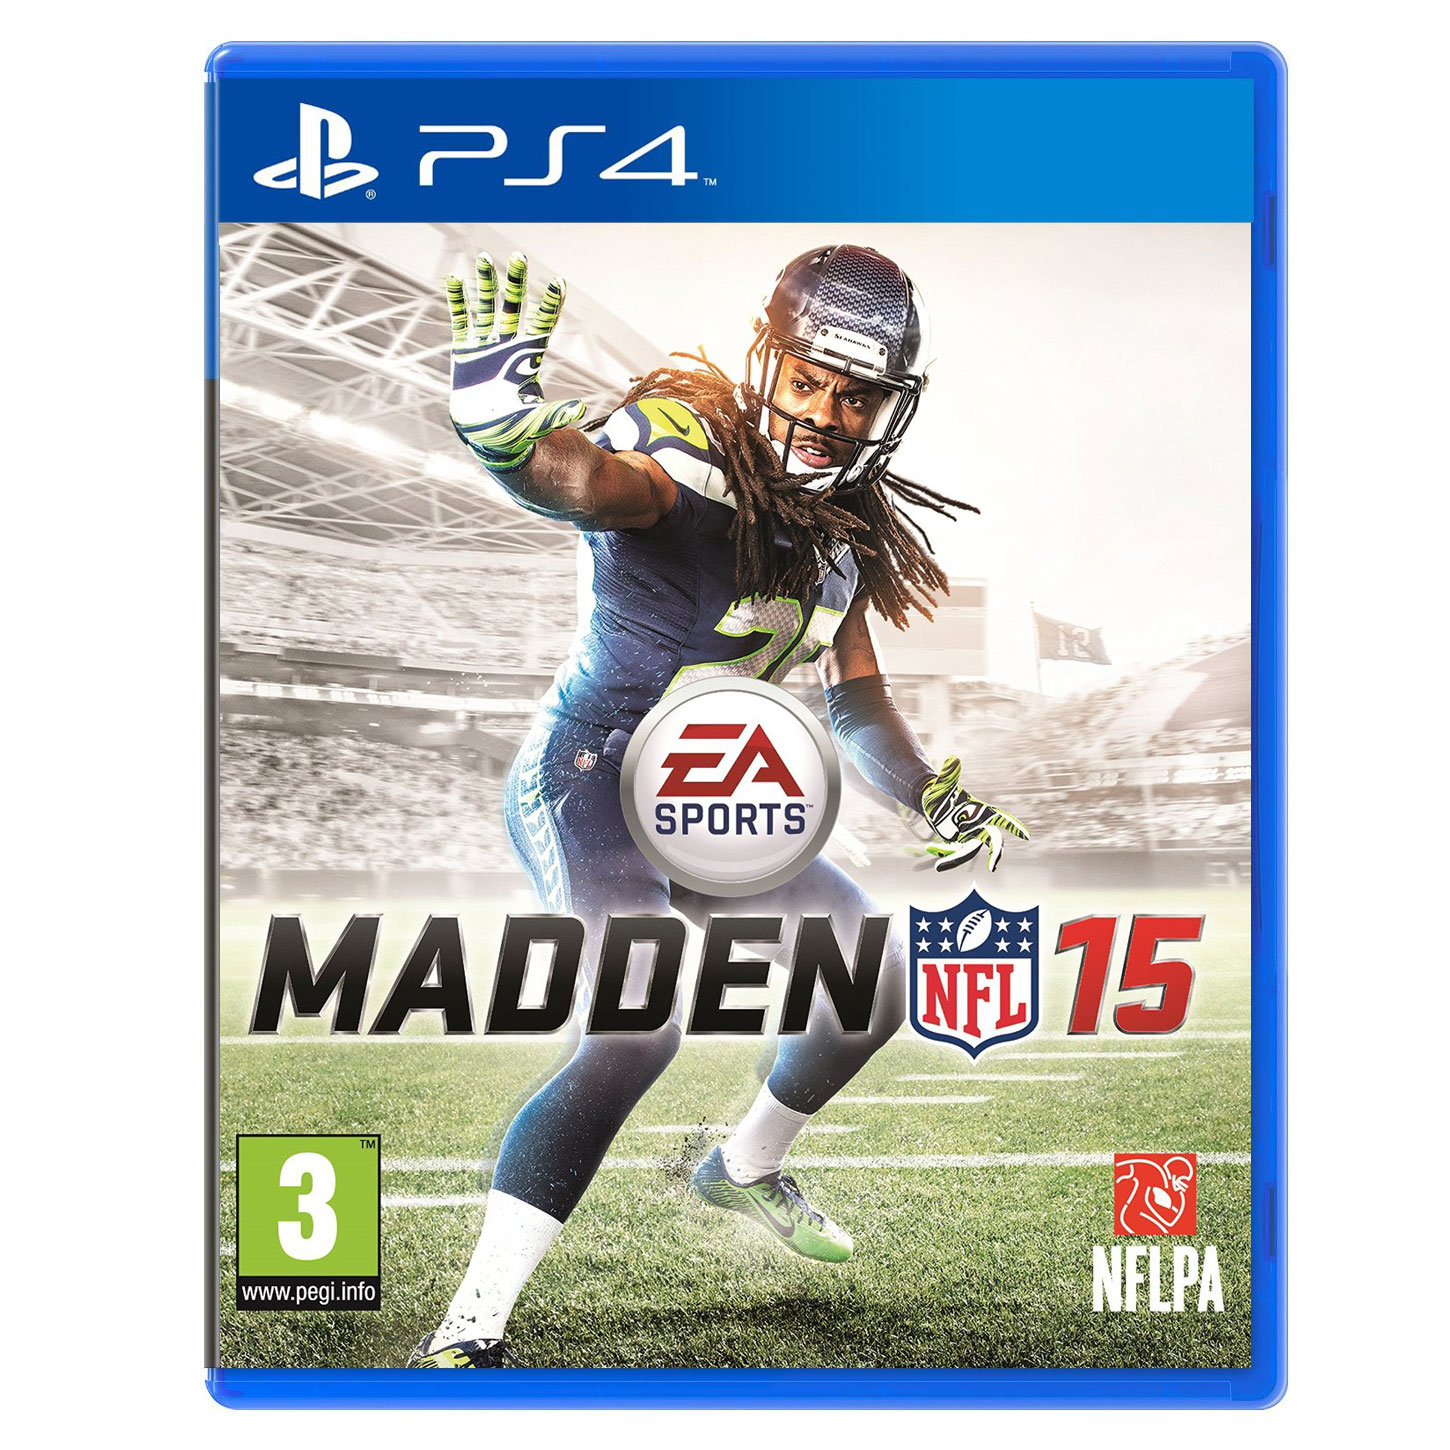 madden nfl 15 ps4 jeux ps4 electronic arts sur. Black Bedroom Furniture Sets. Home Design Ideas